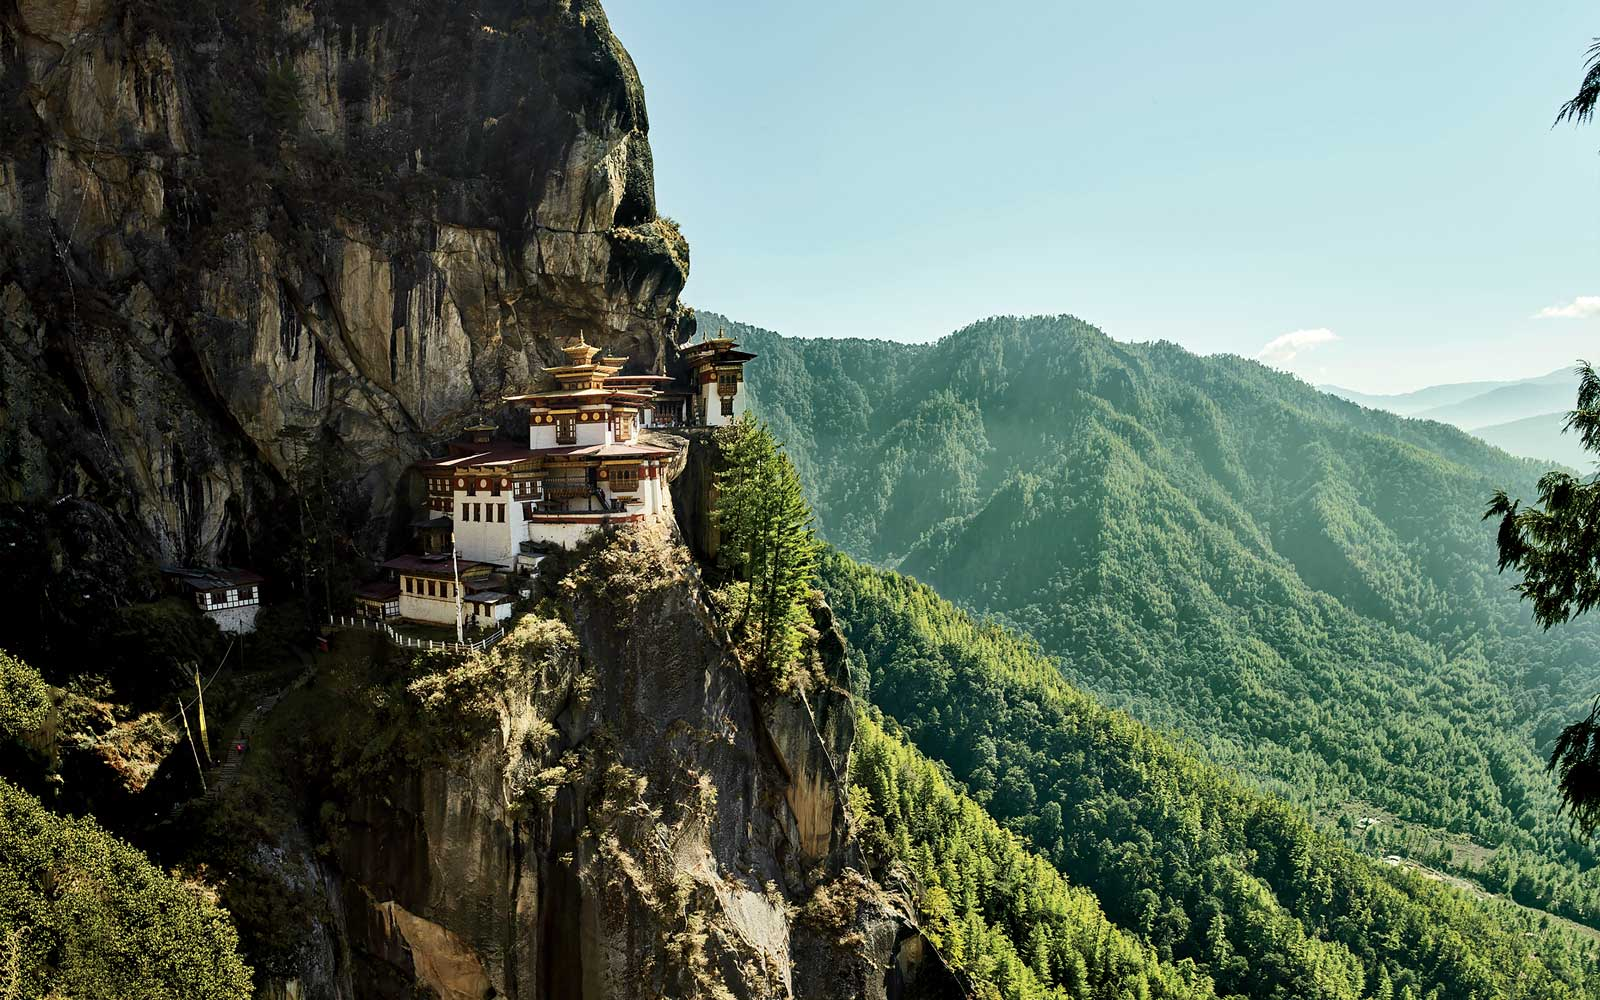 Tiger's Nest Temple, in Bhutan